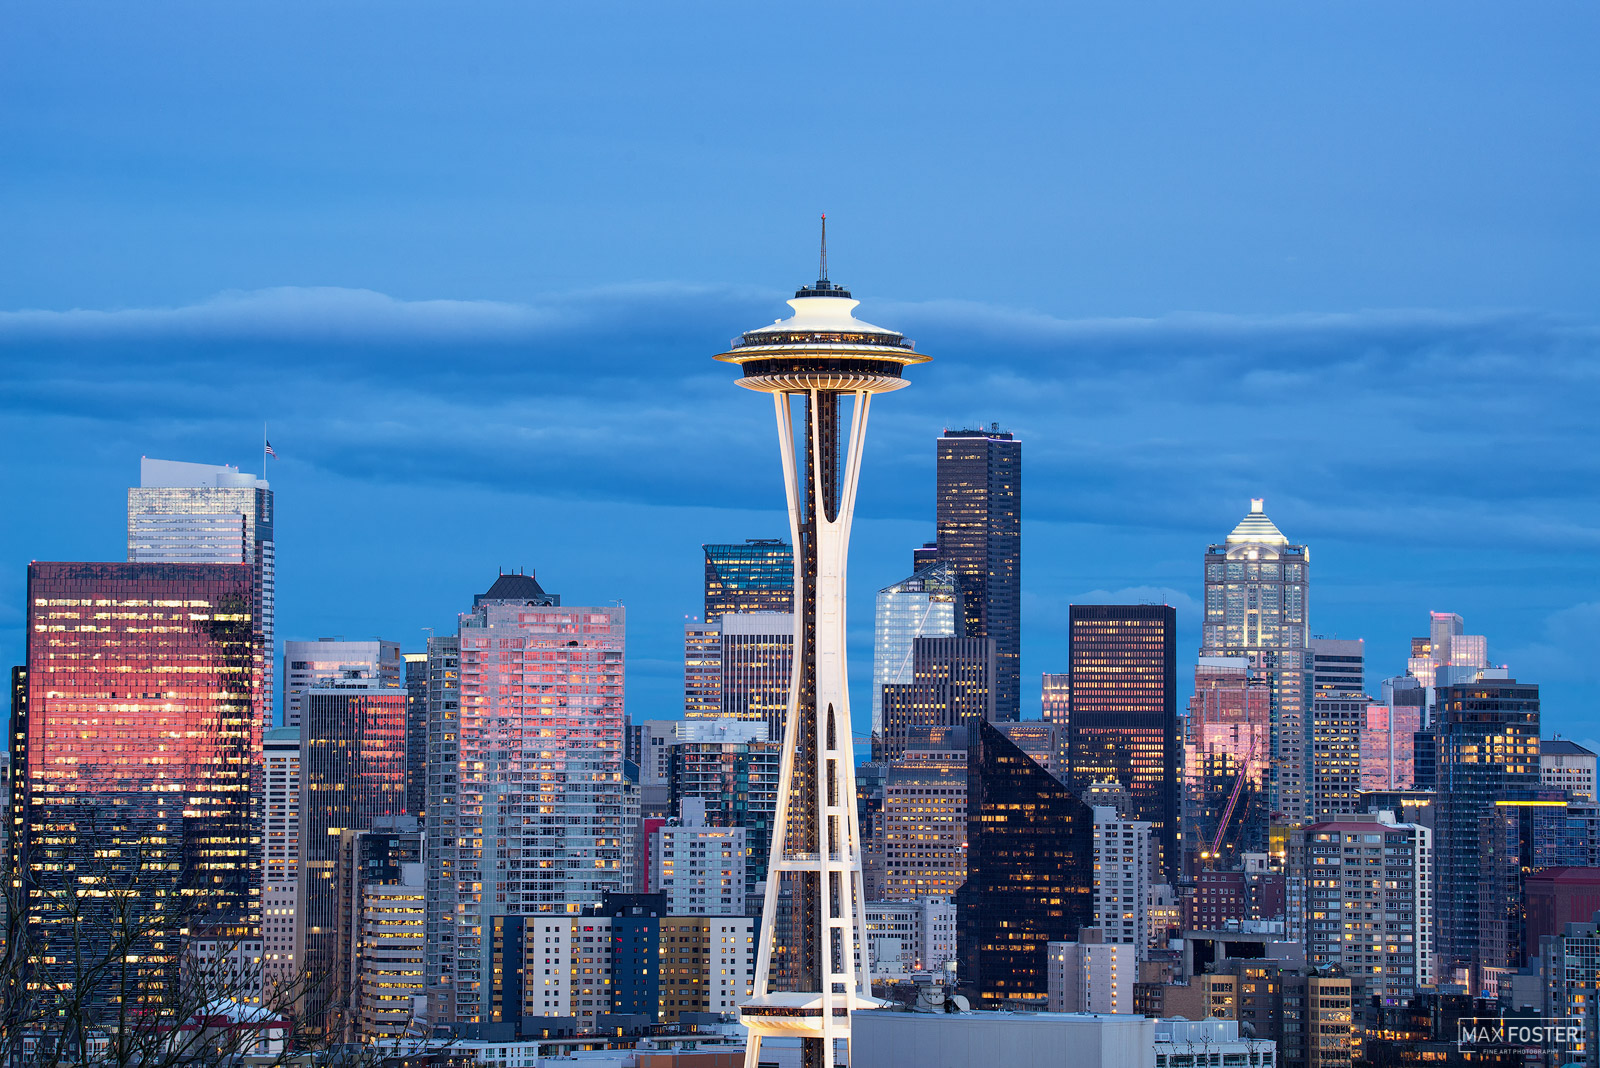 Seattle Skyline, Washington, Eye of the Needle, Seaport, West Coast, Puget Sound, Pacific Ocean, Space Needle, photo